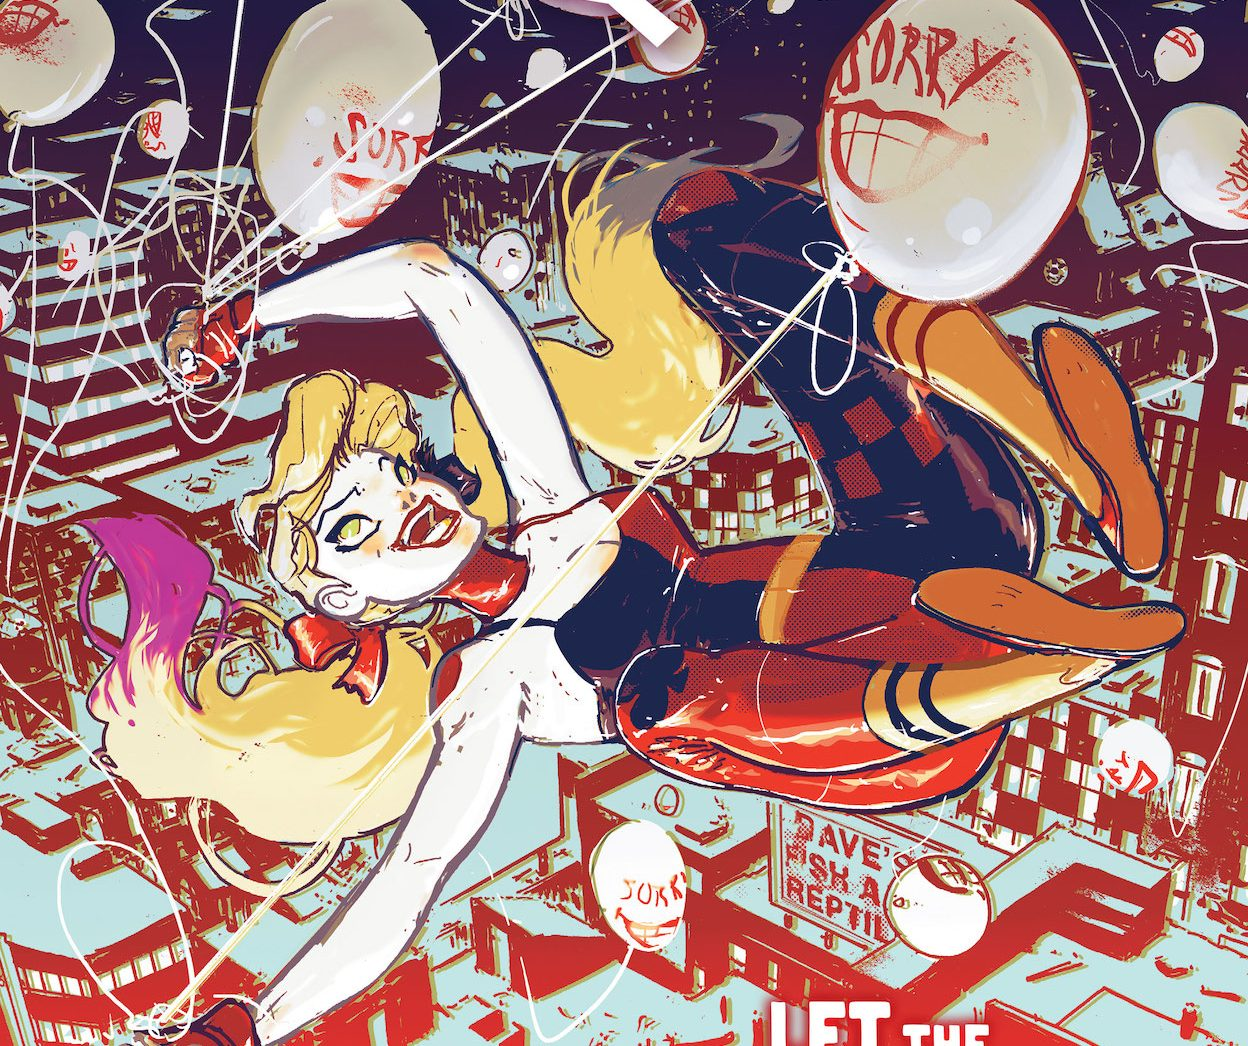 'Harley Quinn' #1 is an excellent introduction to Harley's new status quo